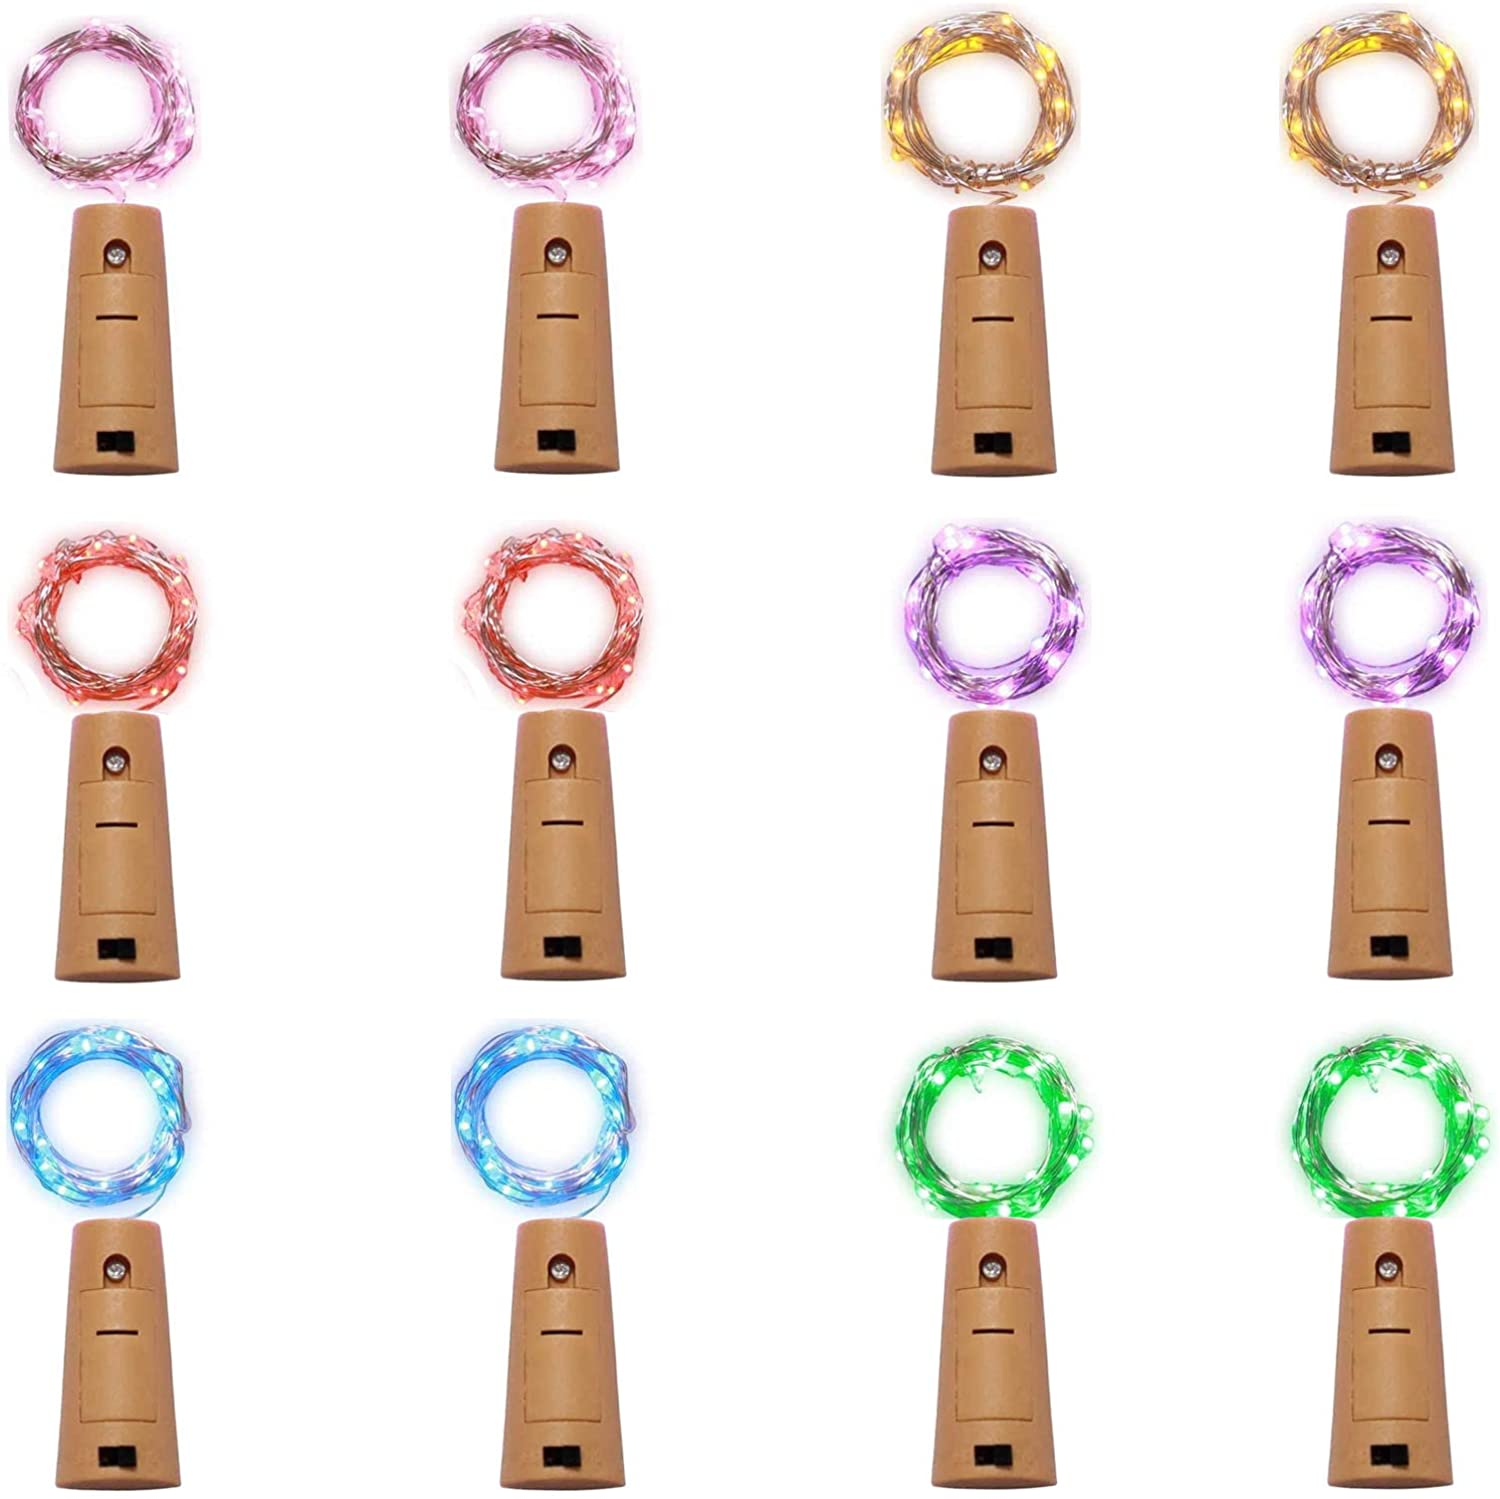 low-pricing 12 Pack 20 LED Wine Bottle Lights String Mini Fairy Max 51% OFF Cork